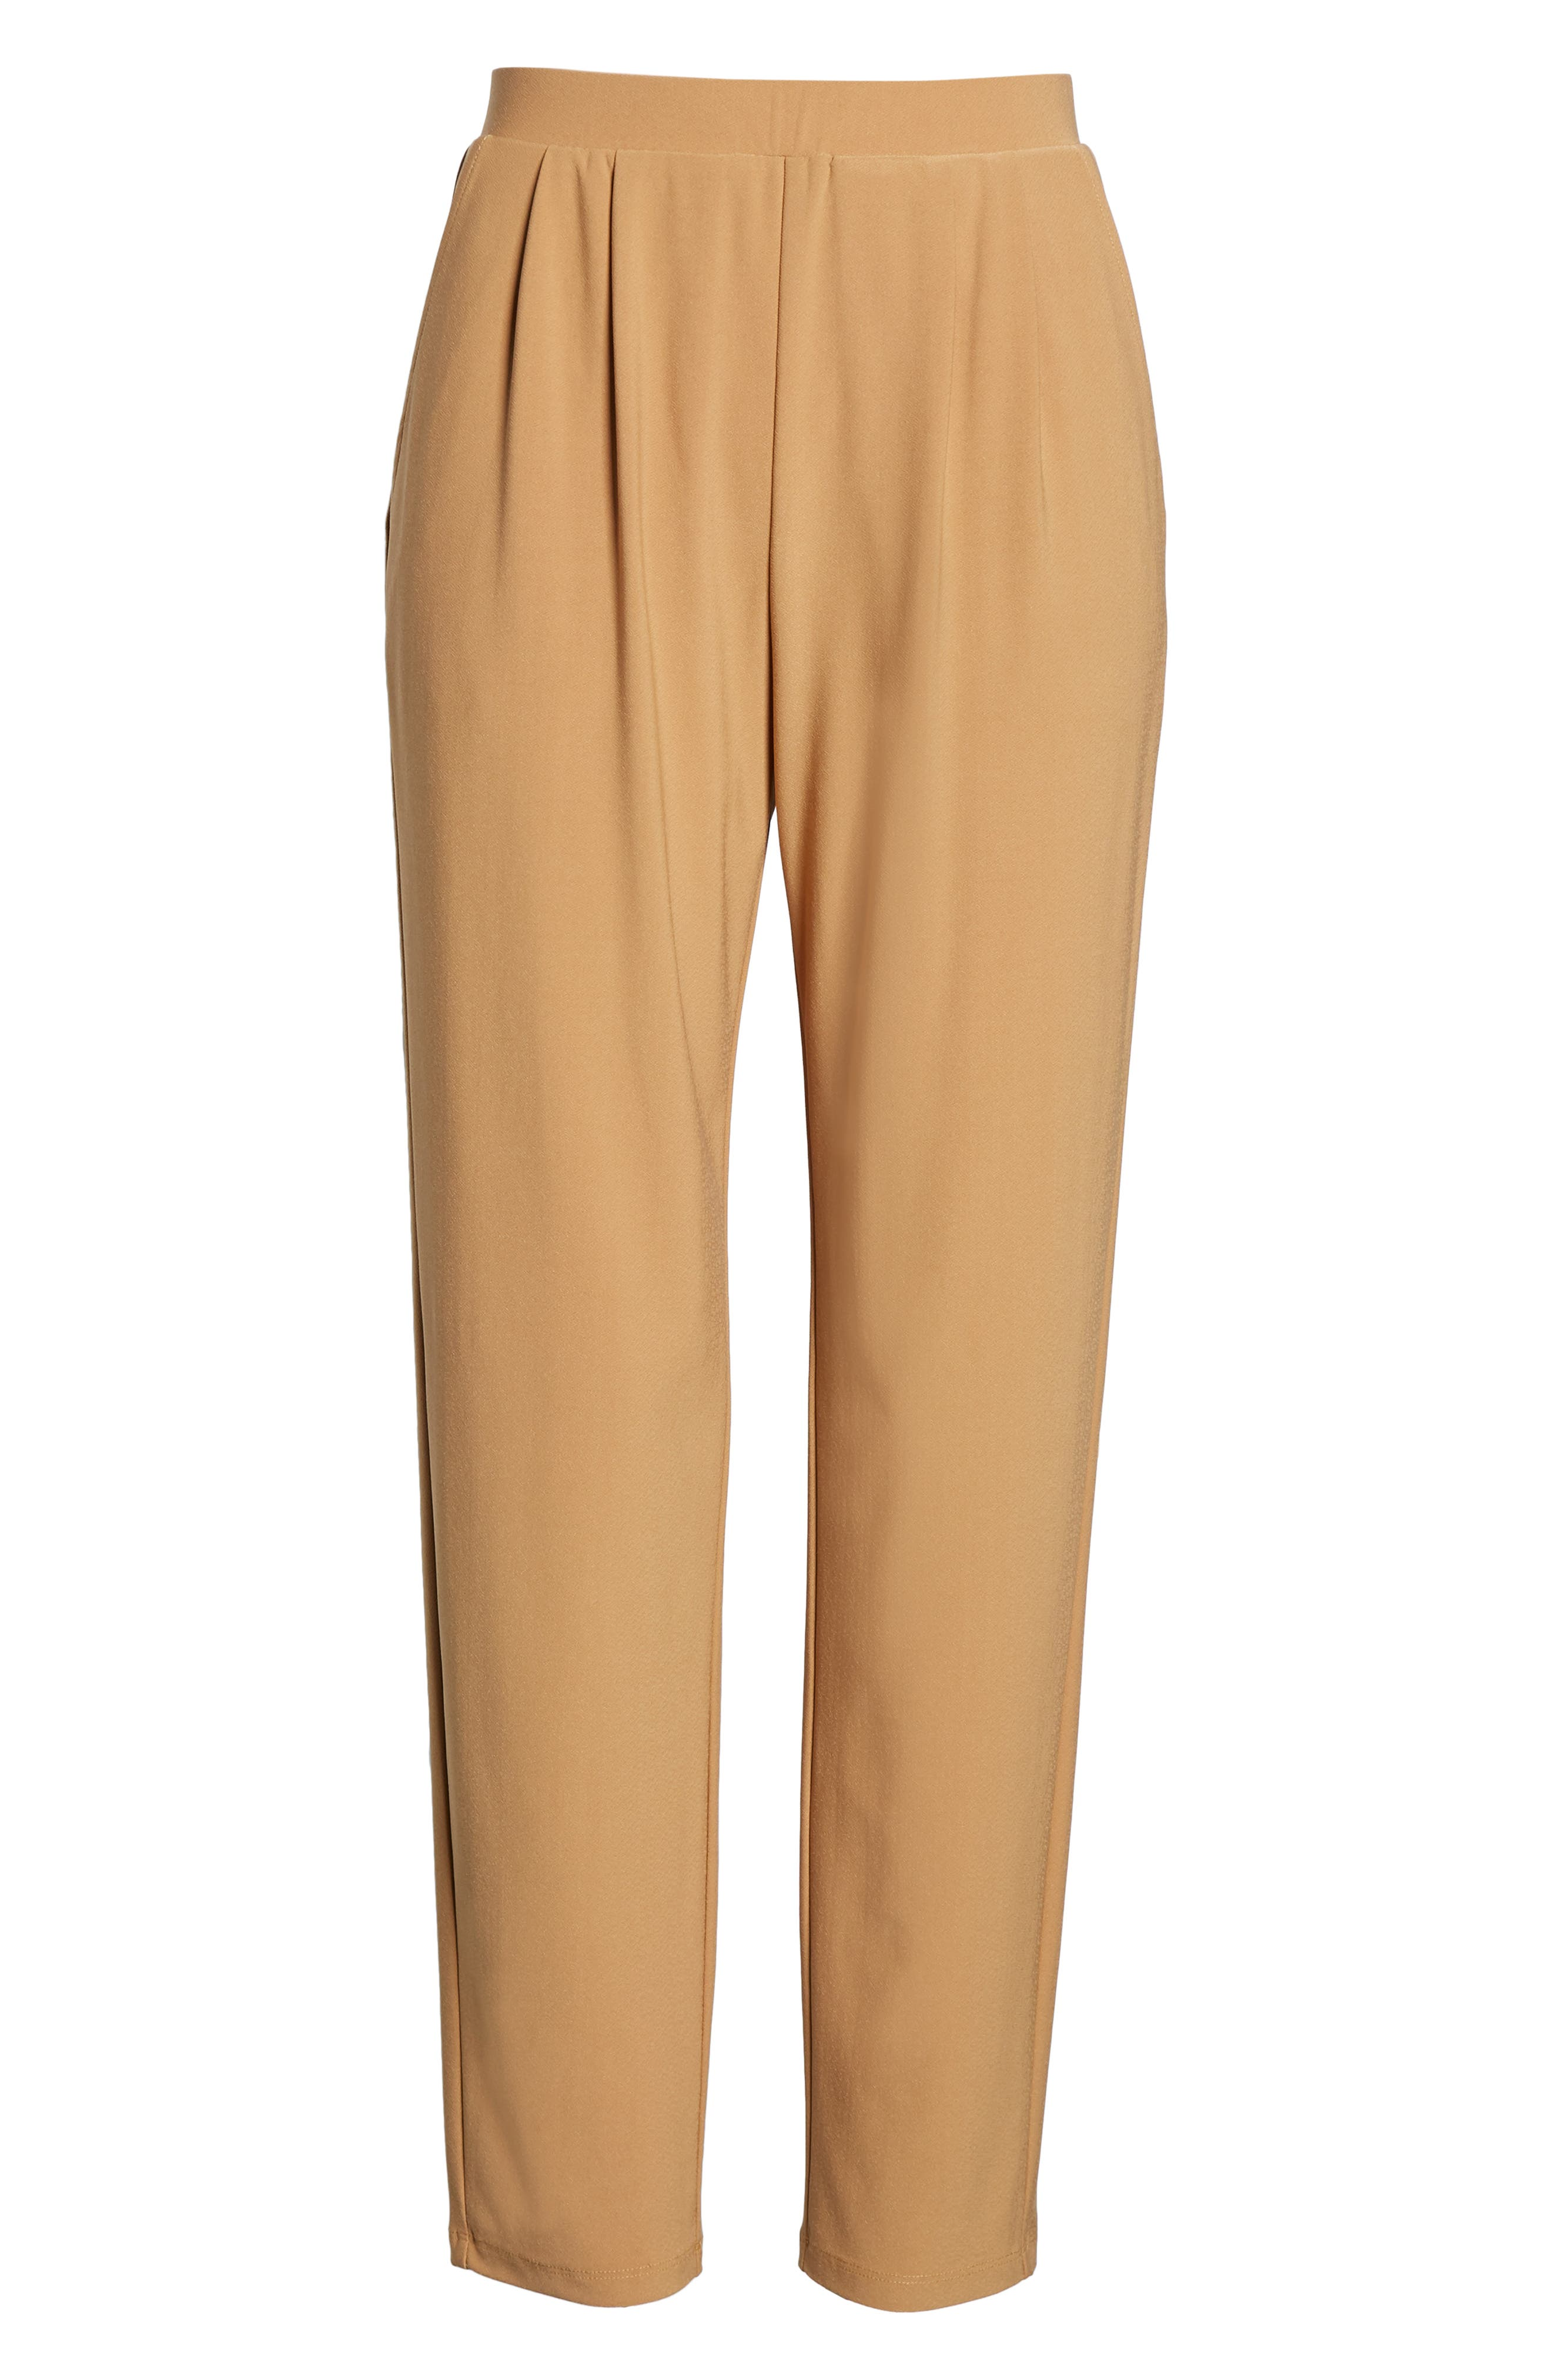 LEITH, Pleat Front Trousers, Alternate thumbnail 7, color, TAN DALE